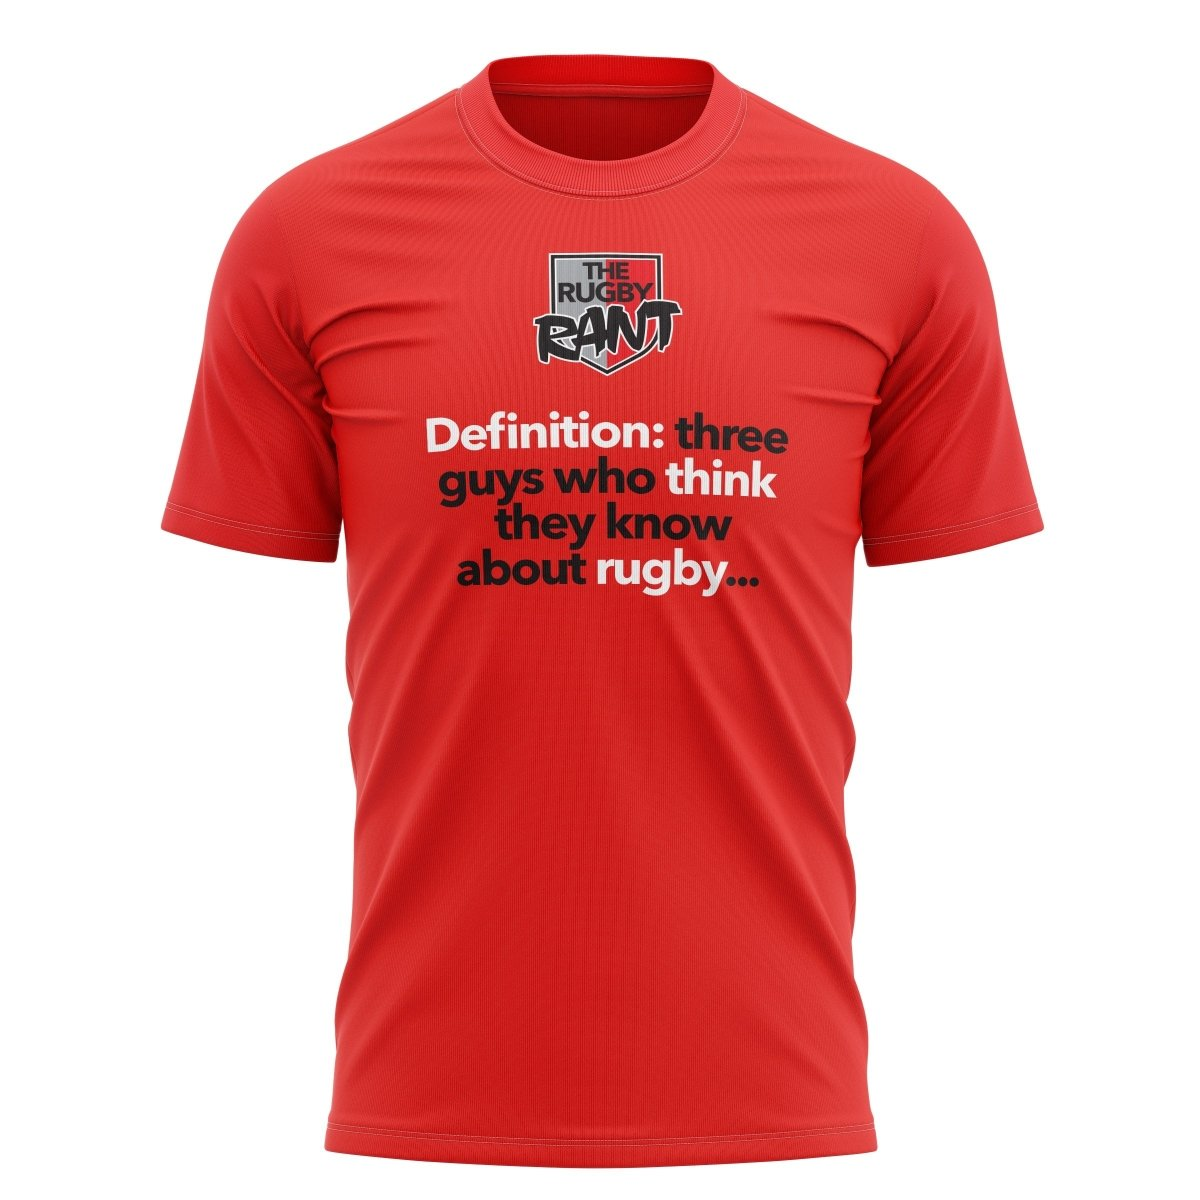 "The Rugby Rant ""Definition"" Tee - Unisex - www.therugbyshop.com"